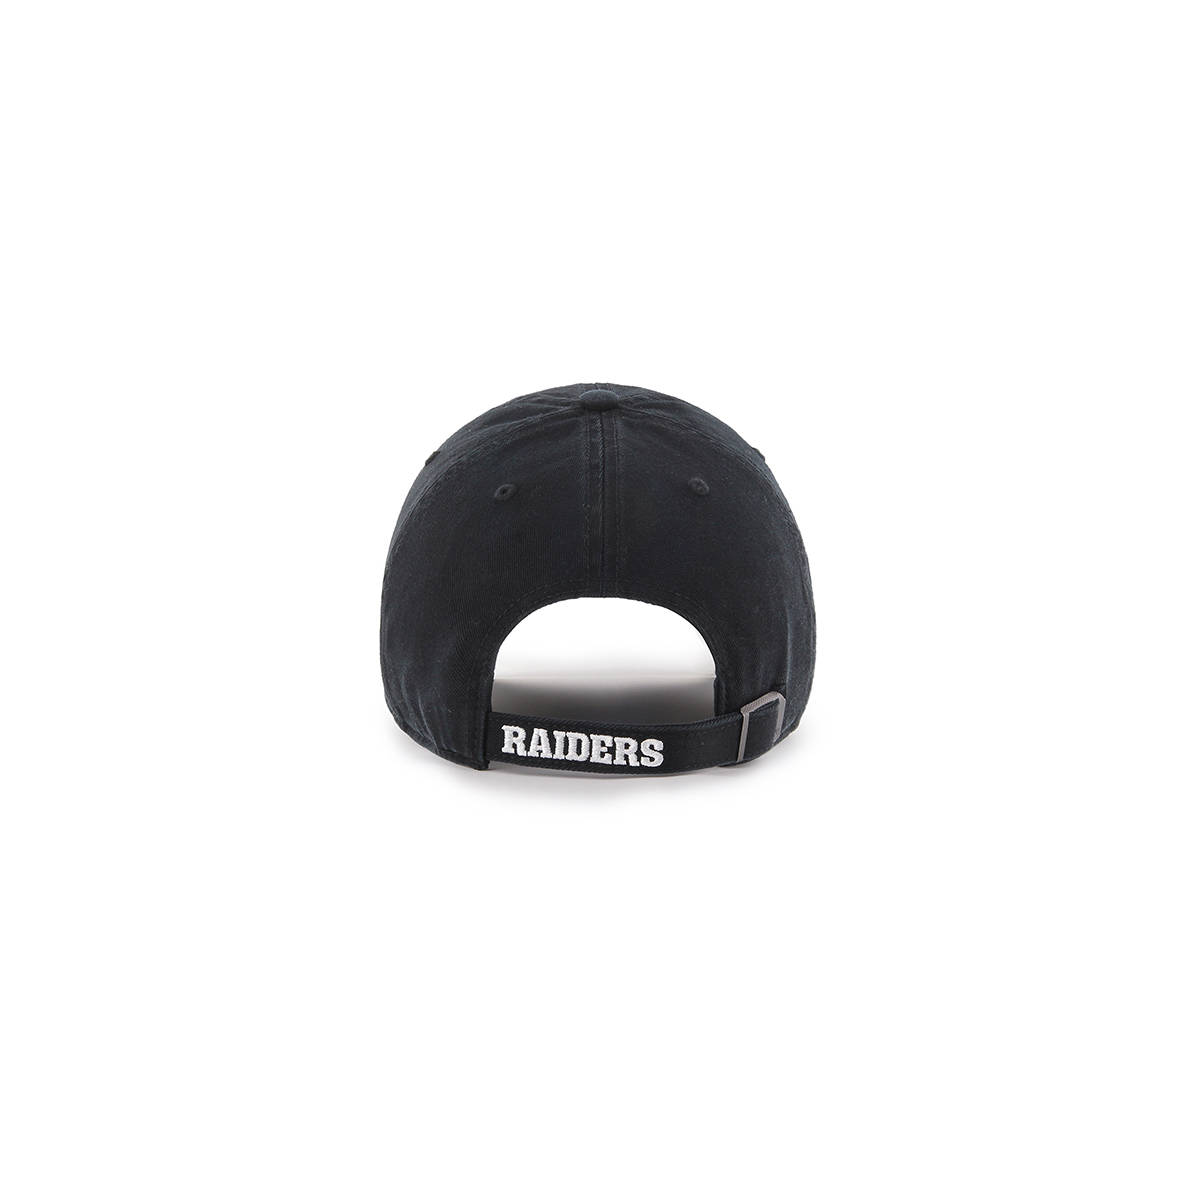 Raiders Base Runner Cap1